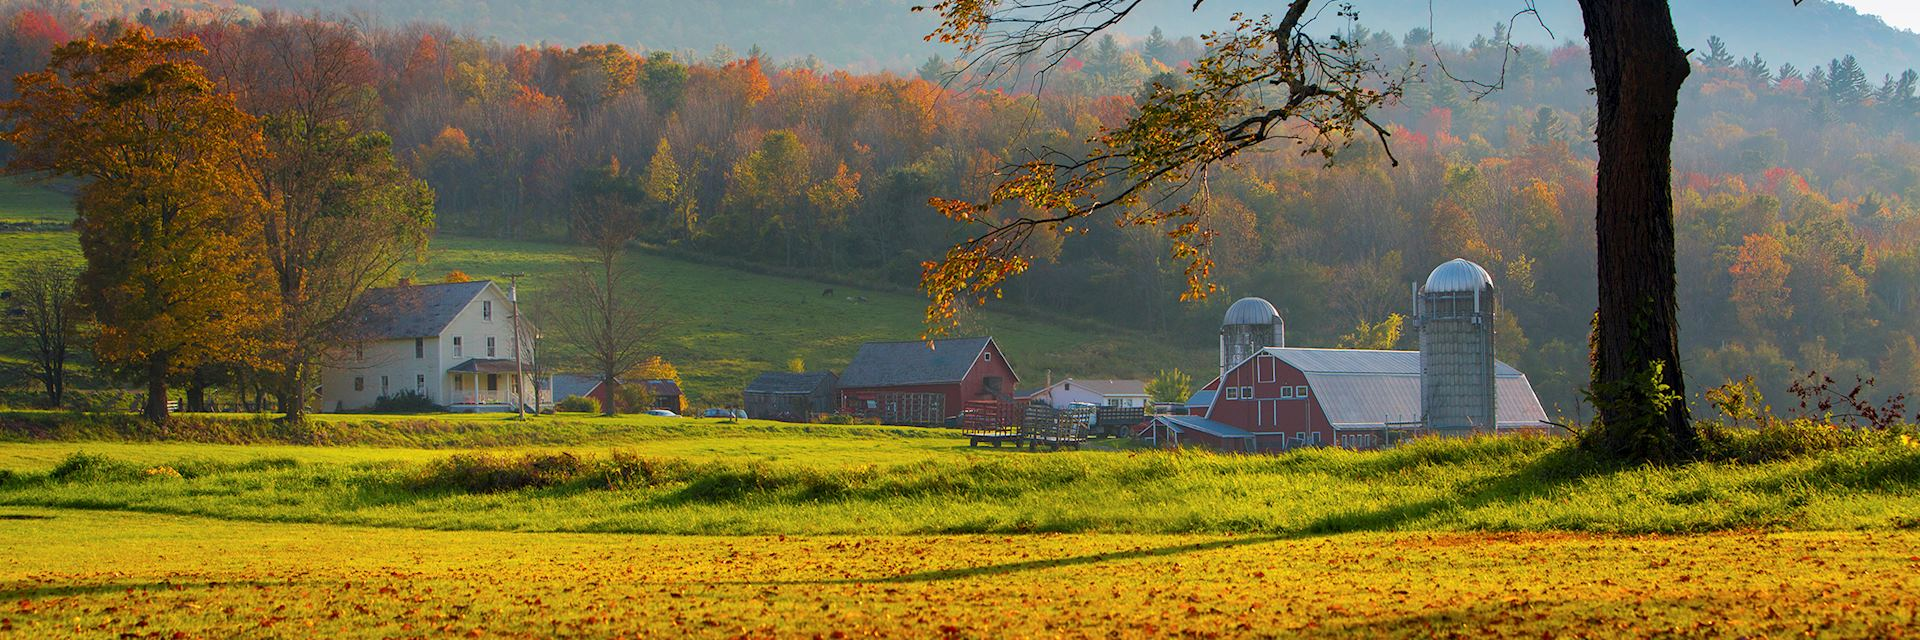 Vermont farmland in New England